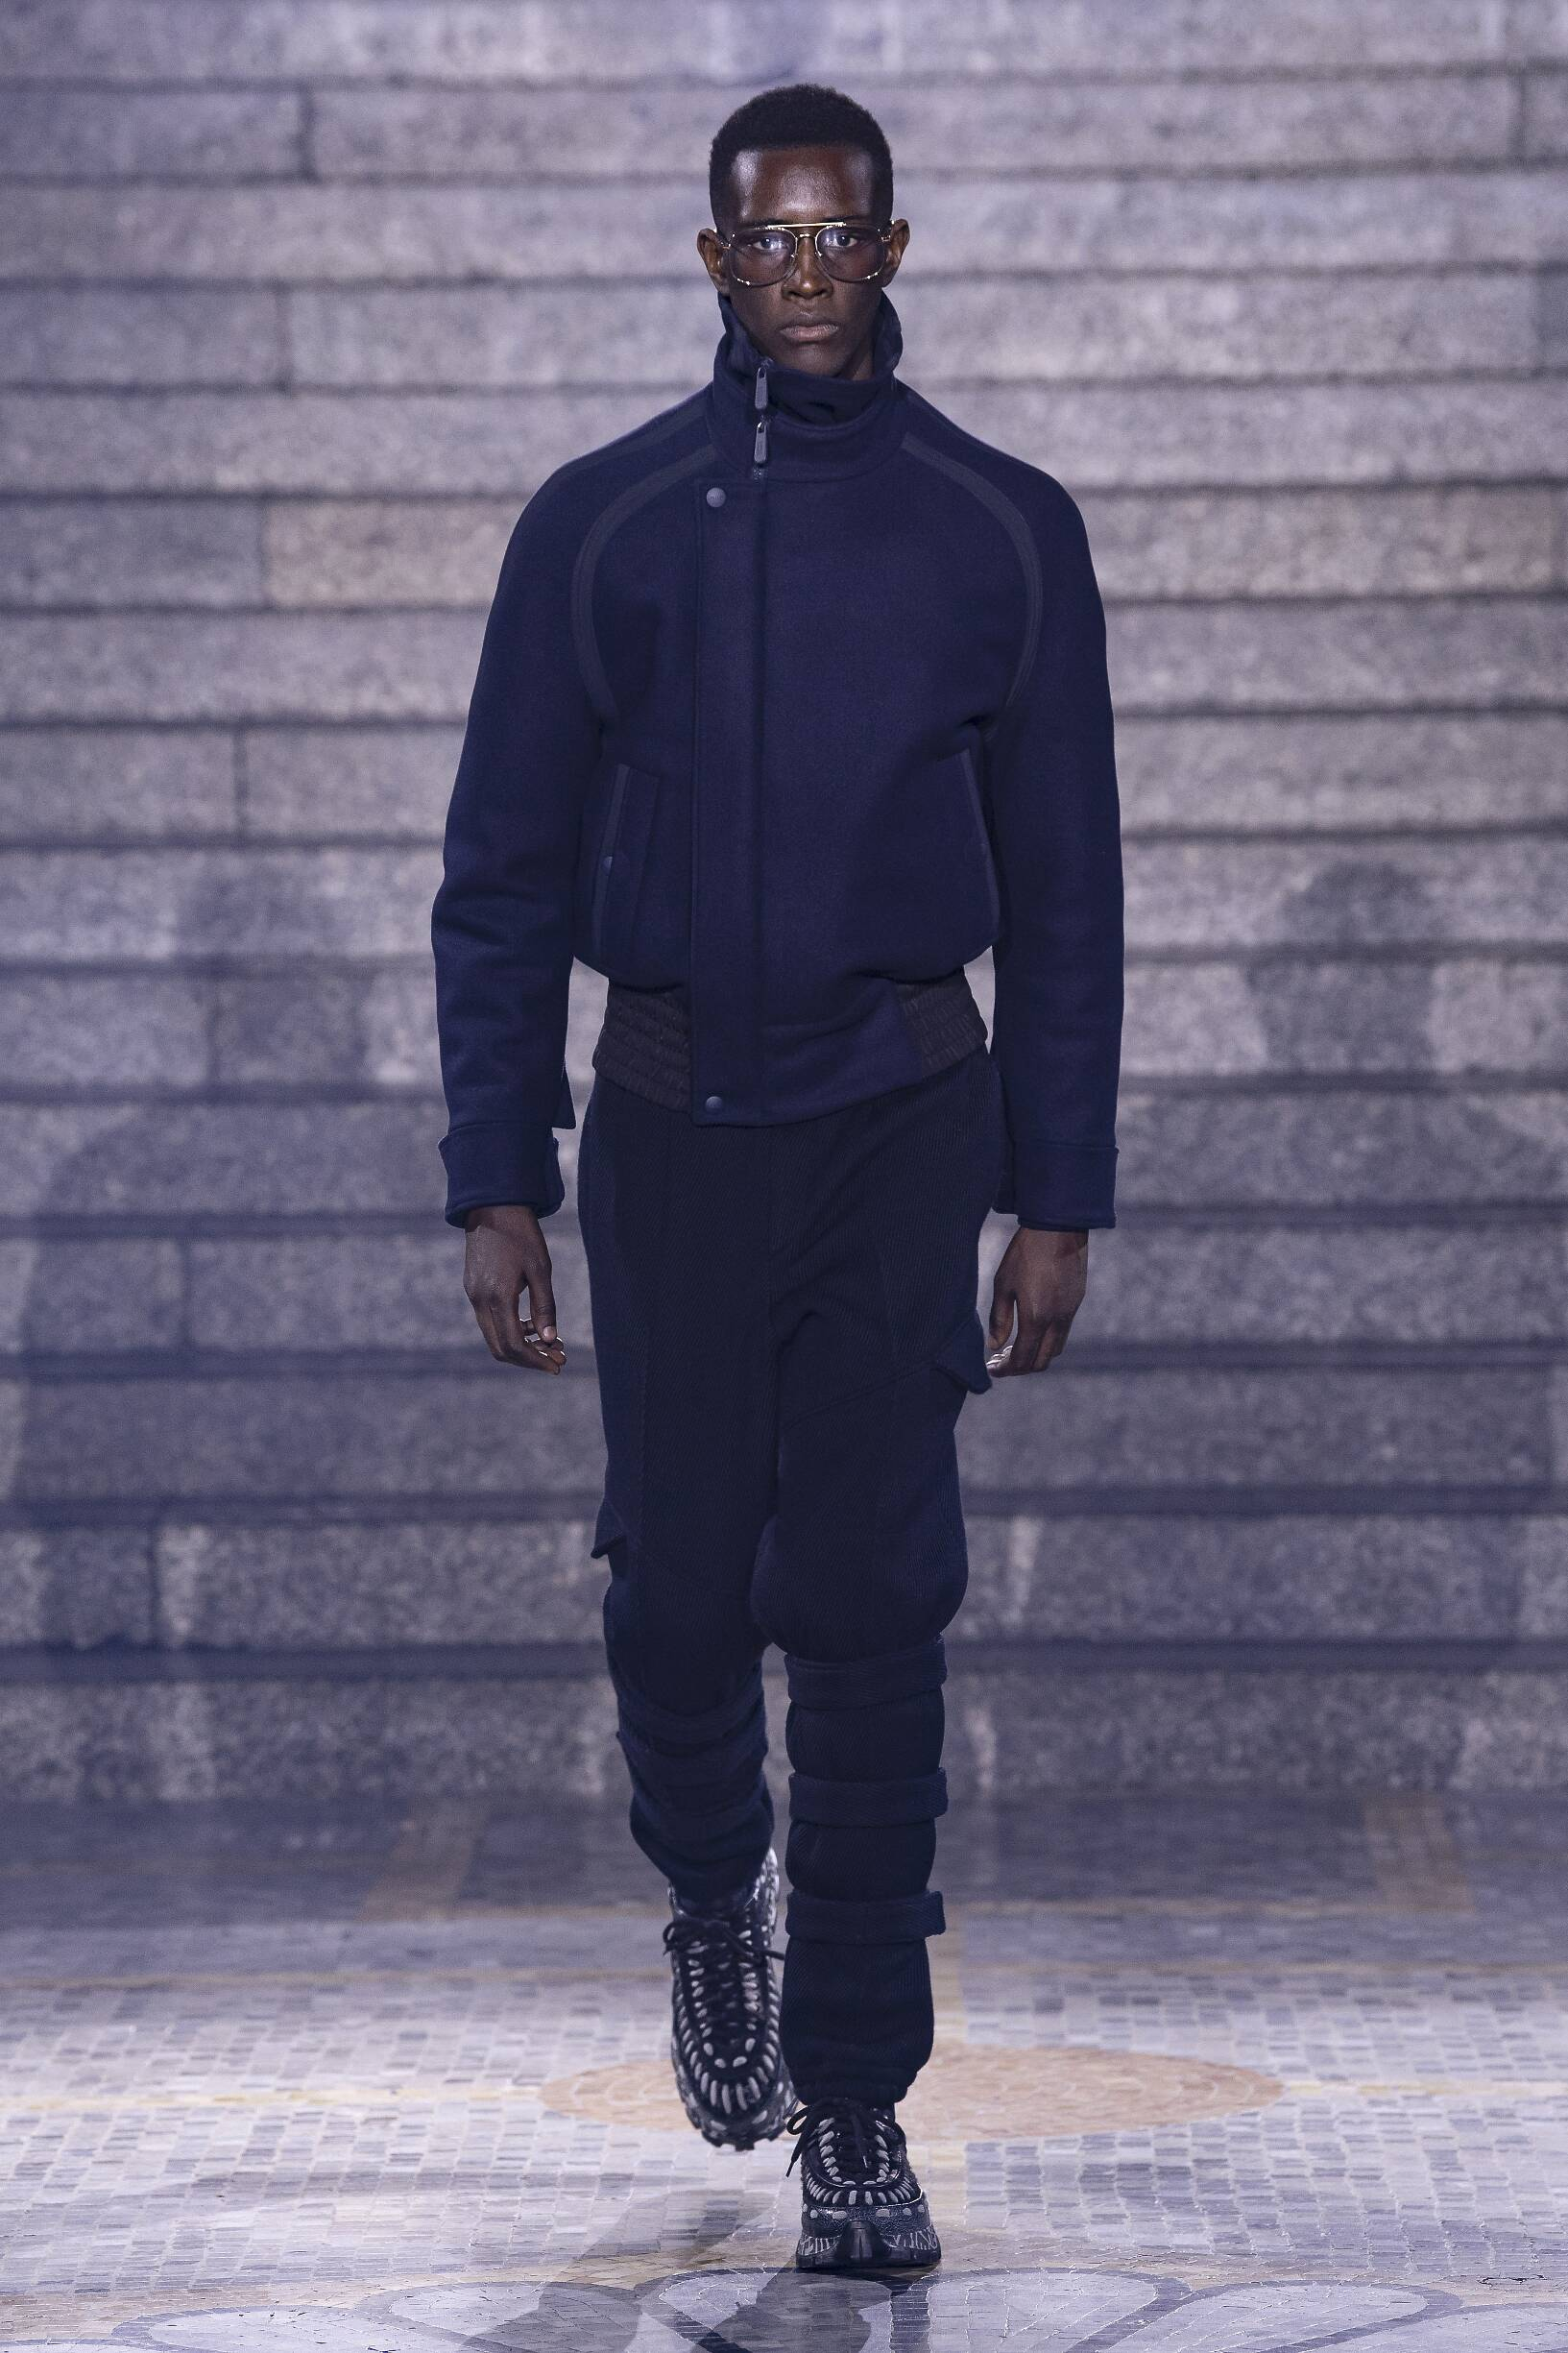 2019 Catwalk Ermenegildo Zegna Man Fashion Show Winter